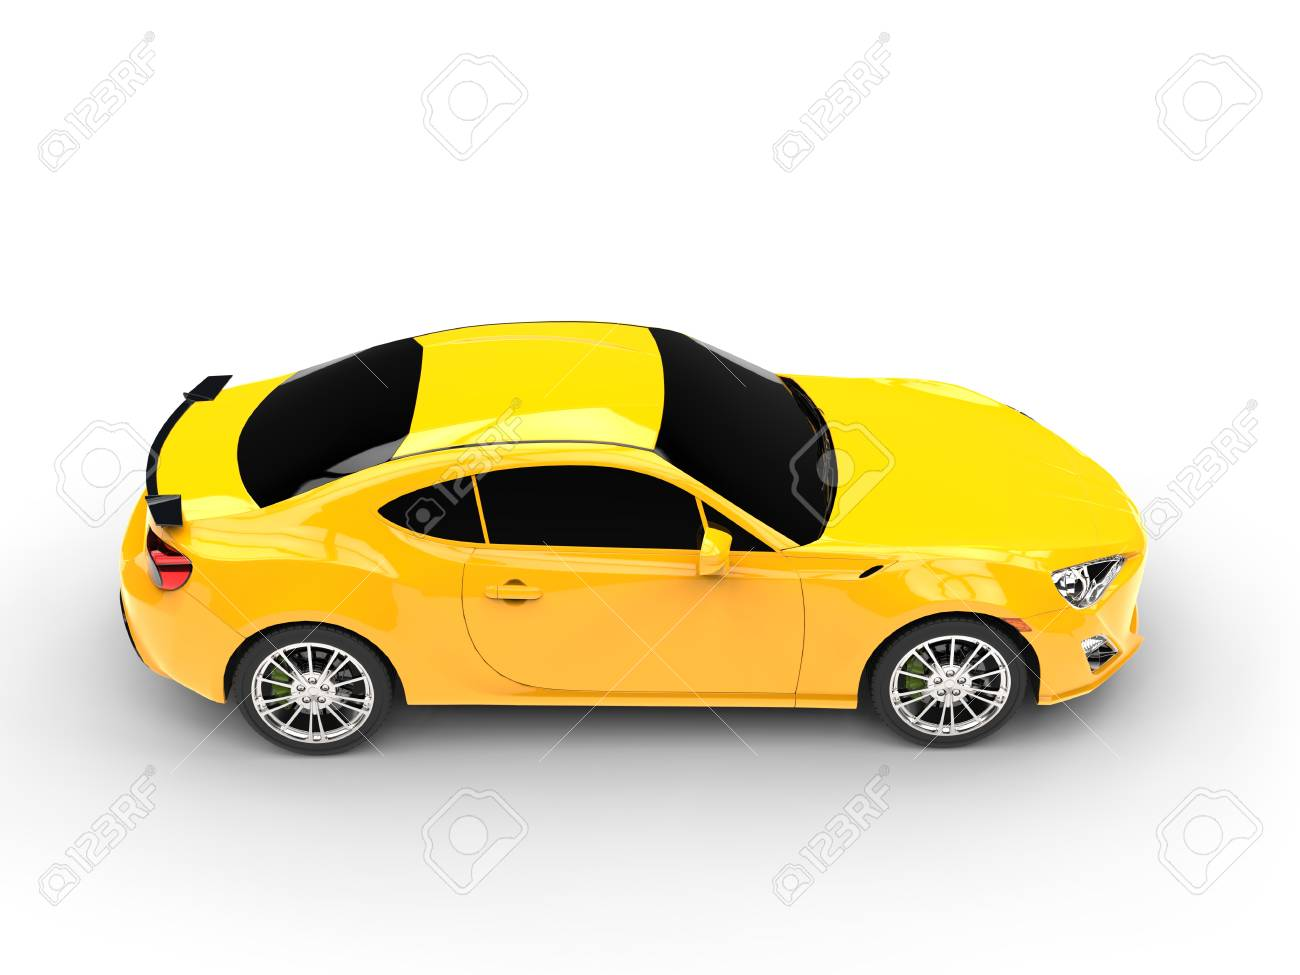 Generic Yellow Sports Car Top View Stock Photo Picture And